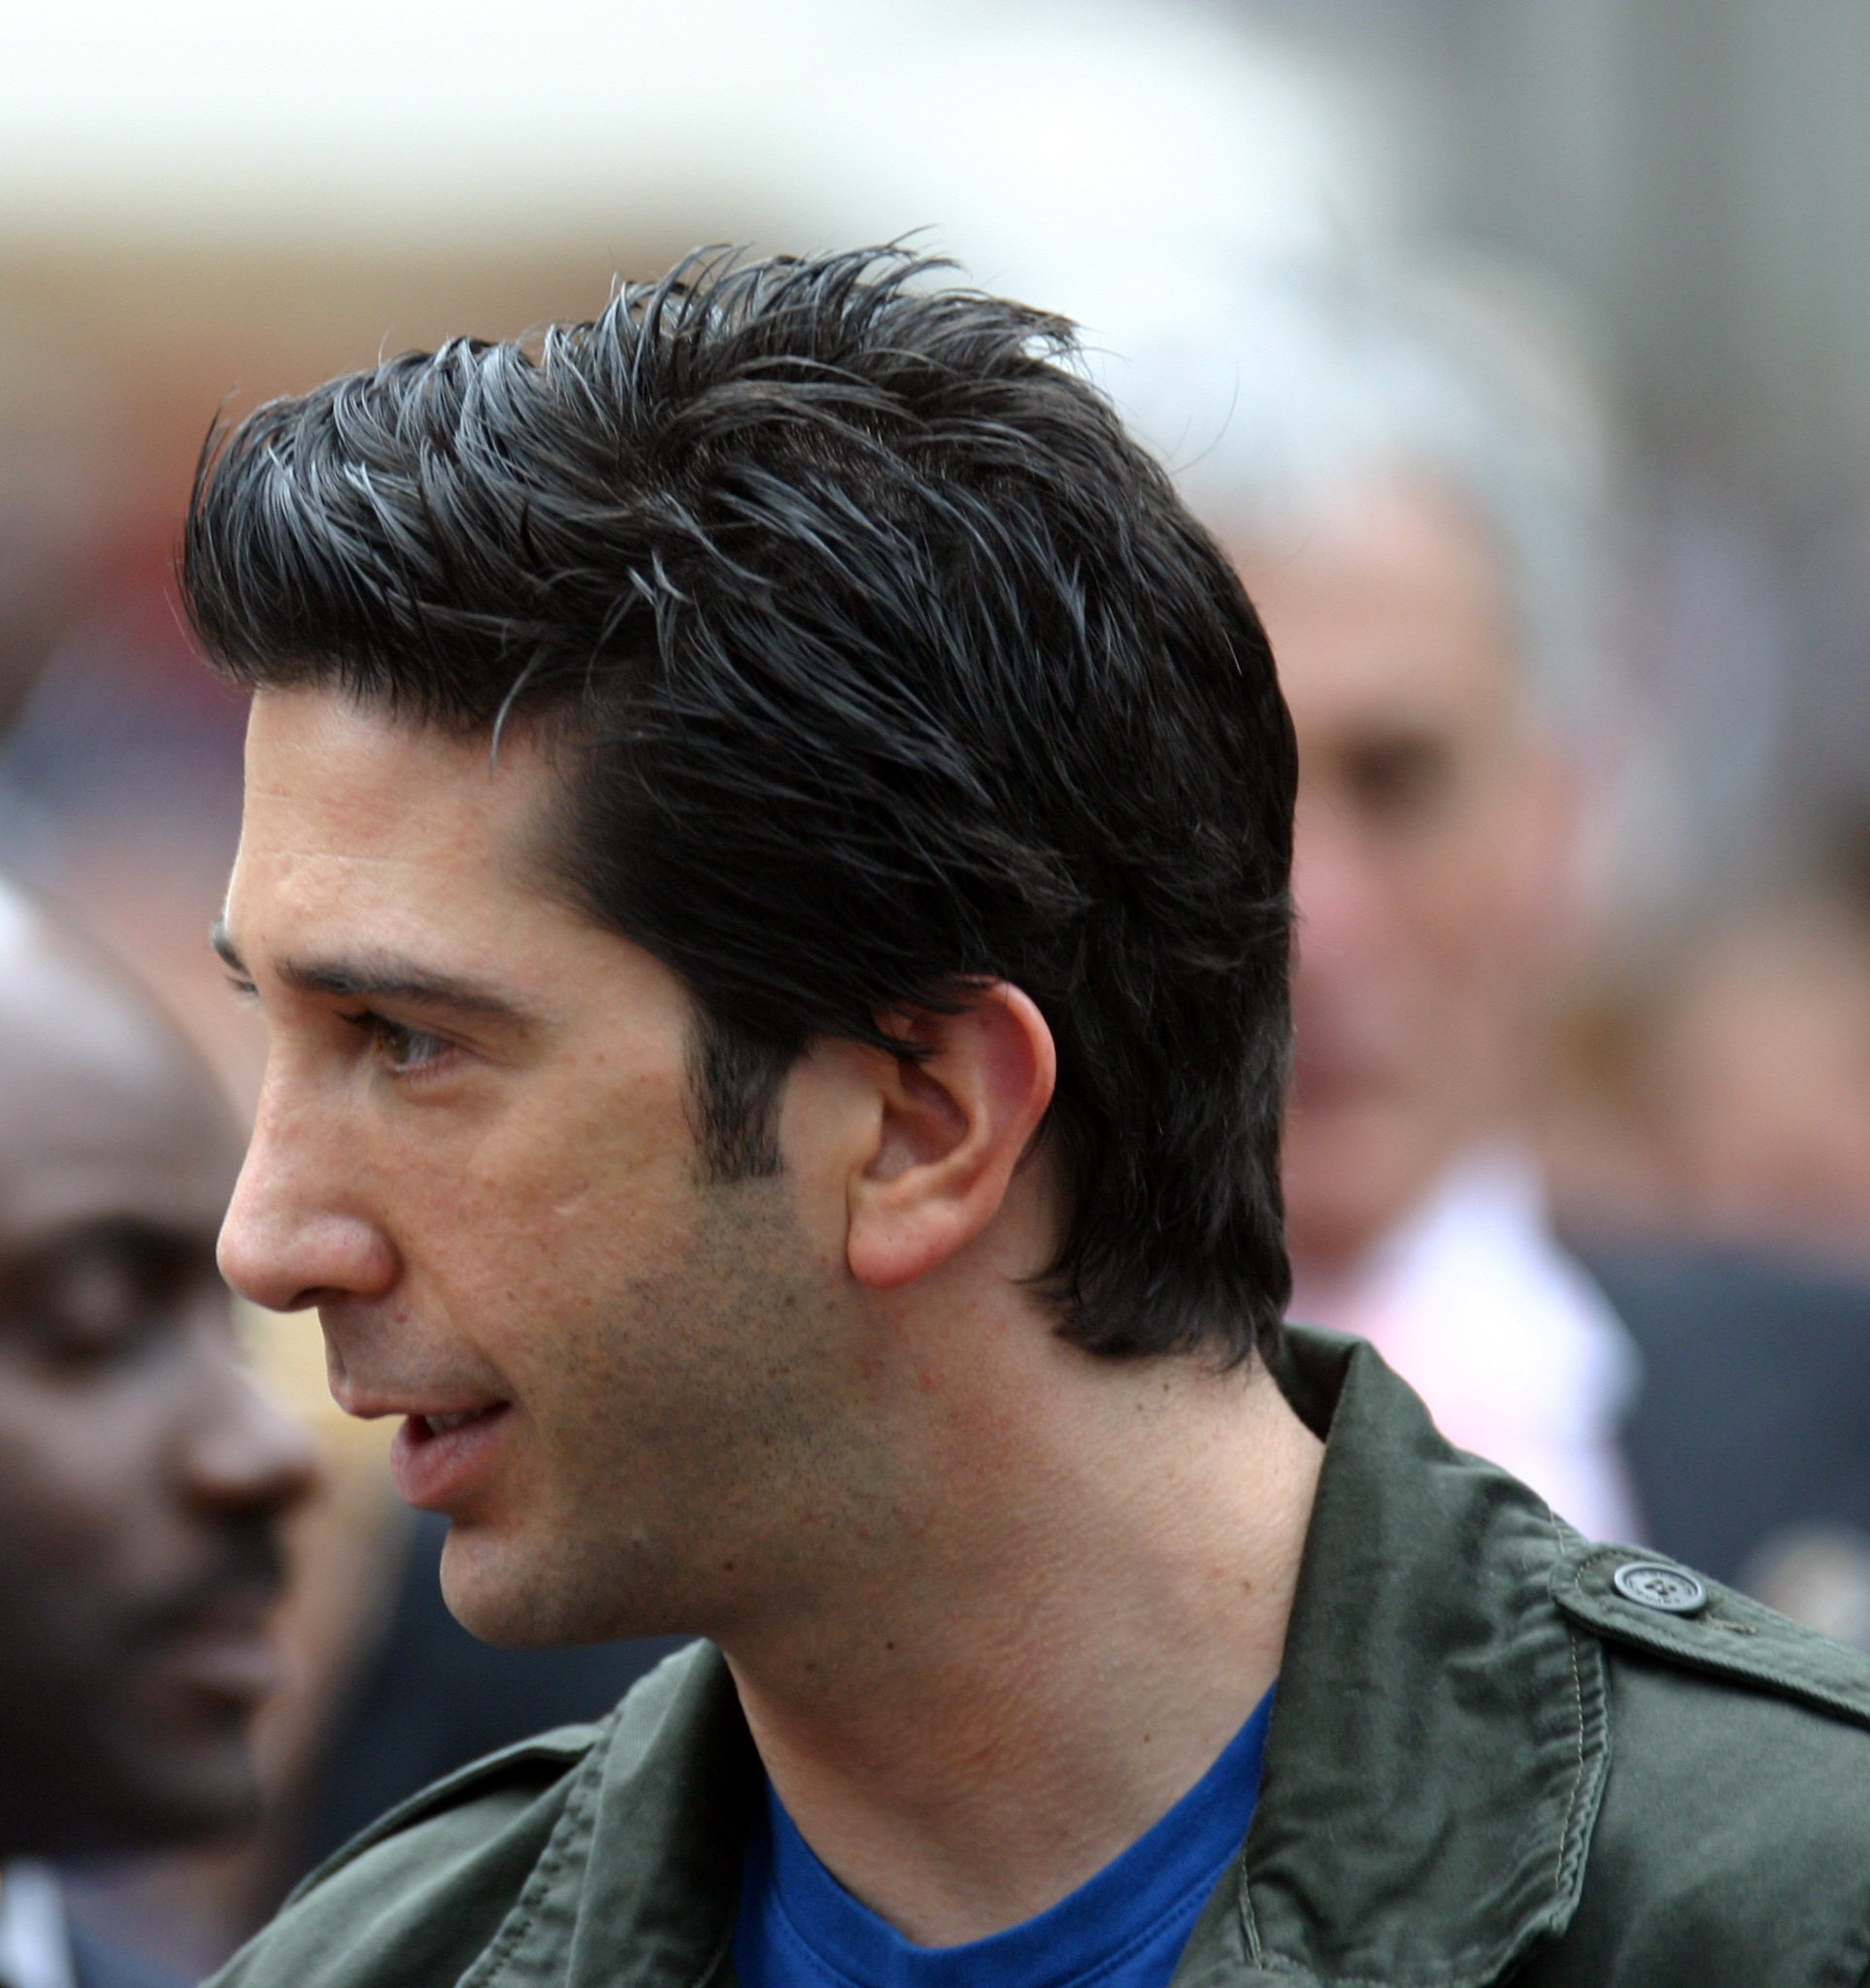 david schwimmer john carterdavid schwimmer 2017, david schwimmer height, david schwimmer wife, david schwimmer young, david schwimmer net worth, david schwimmer 2016, david schwimmer and zoe buckman, david schwimmer interview, david schwimmer robert kardashian, david schwimmer 2015, david schwimmer john carter, david schwimmer wiki, david schwimmer director, david schwimmer parents, david schwimmer movies, david schwimmer accident, david schwimmer home, david schwimmer eye color, david schwimmer films, david schwimmer rap battle